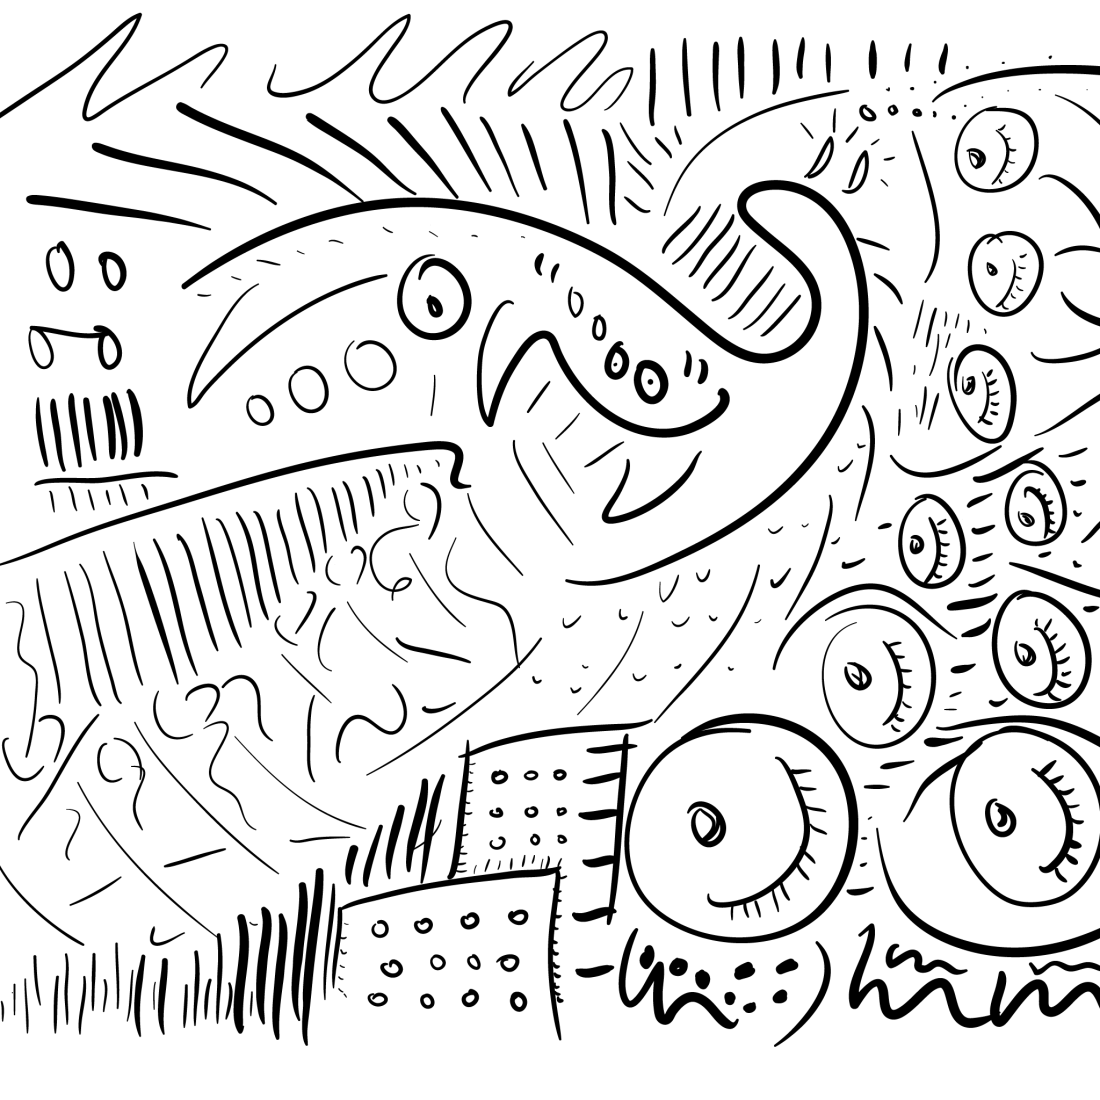 more abstruse mono linework, this one like a sea creature (almost..)